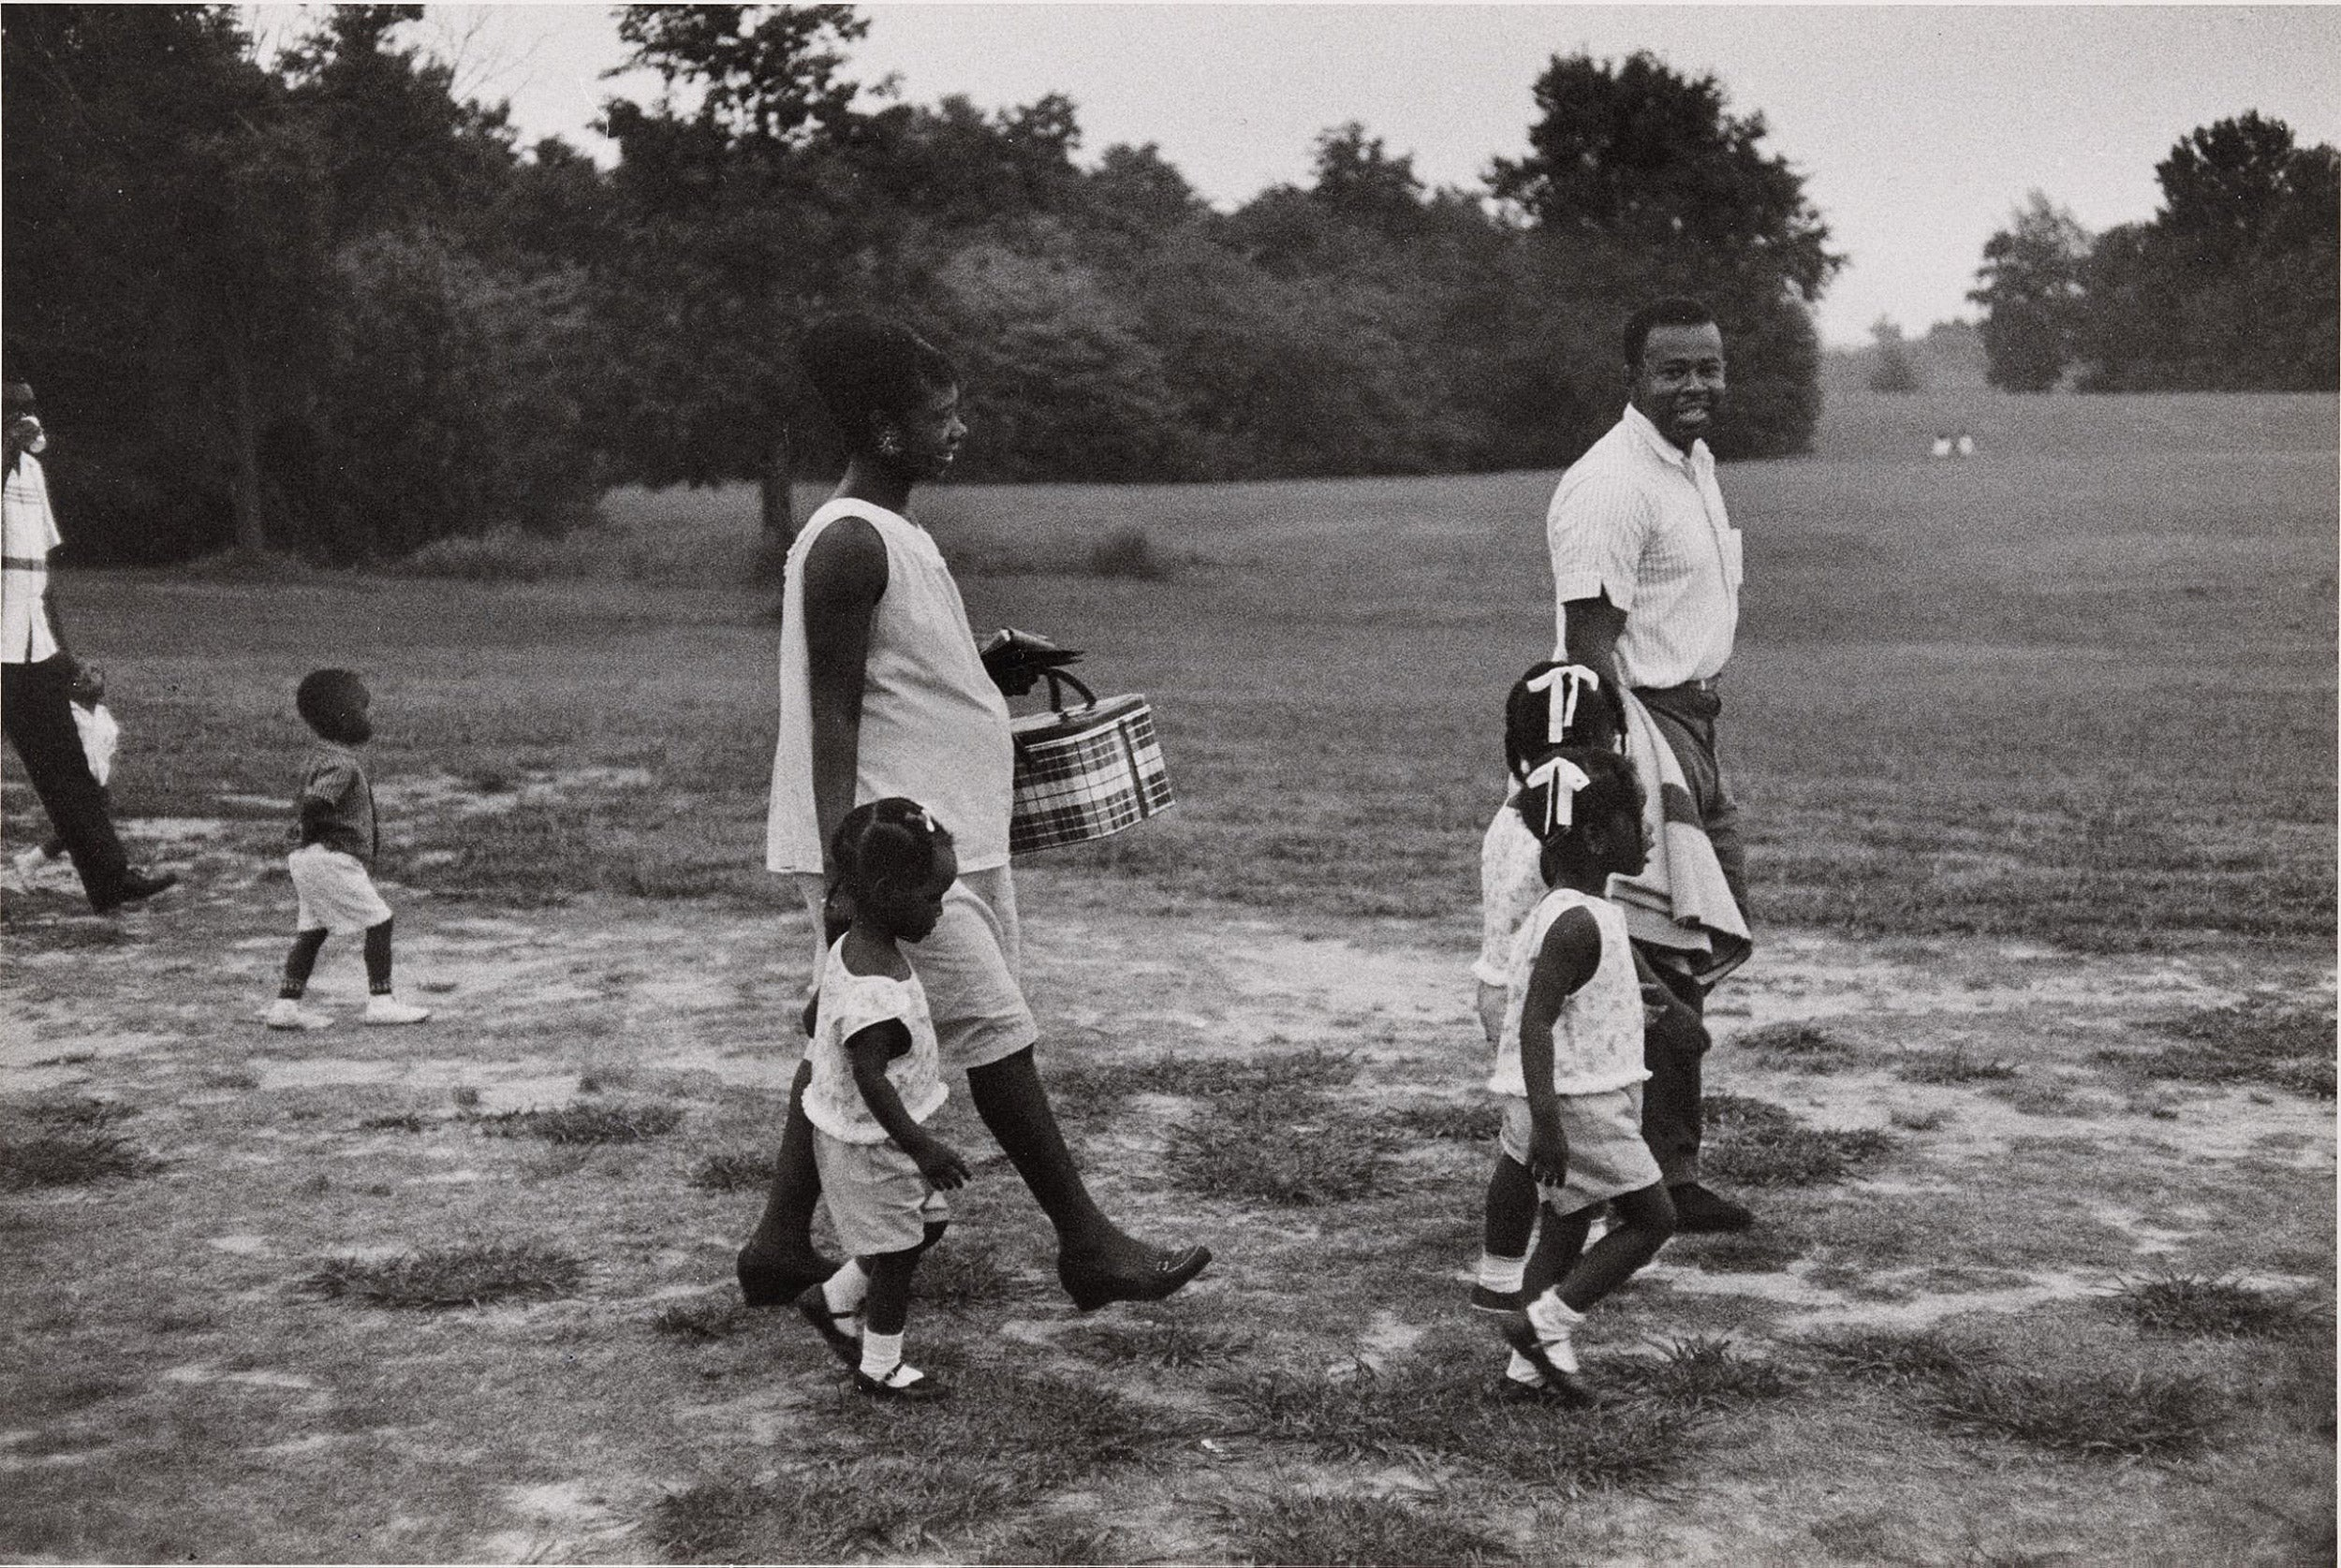 Parents and children with picnic basket in Tennessee, 1962.